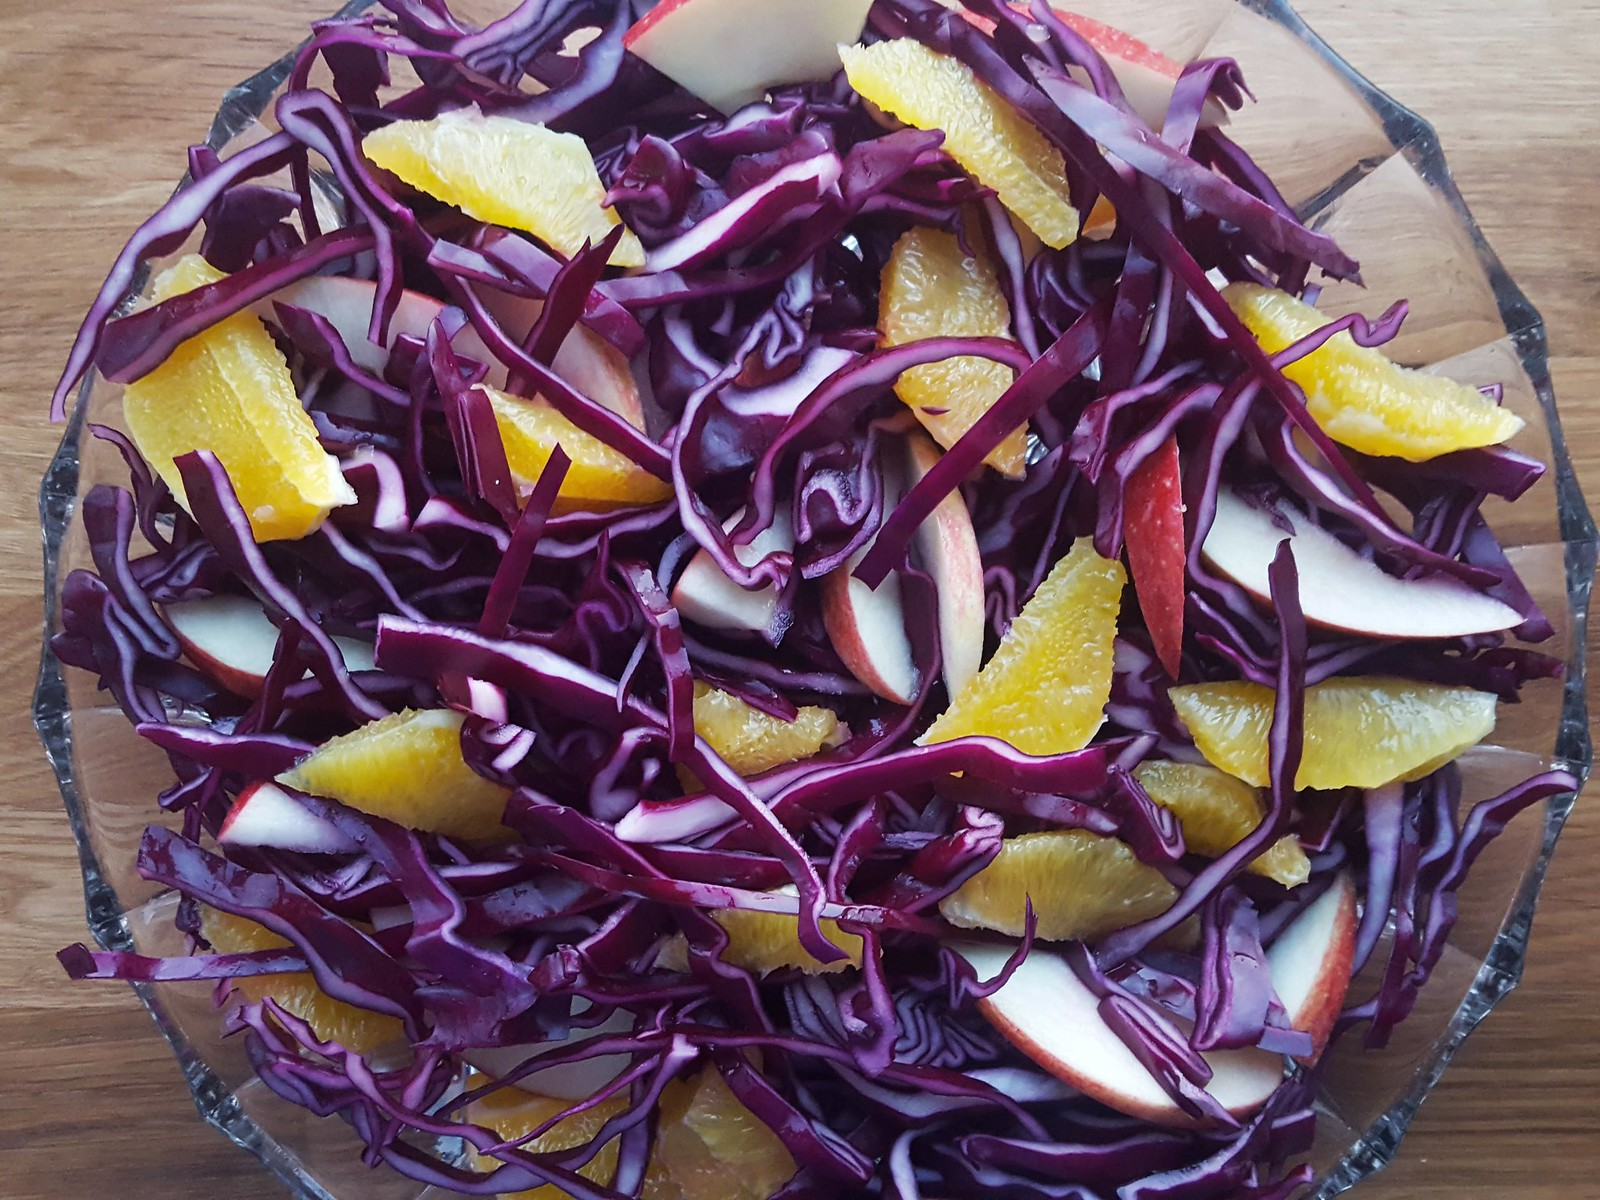 Recipe for Homemade Red Cabbage, Orange and Apple Salad